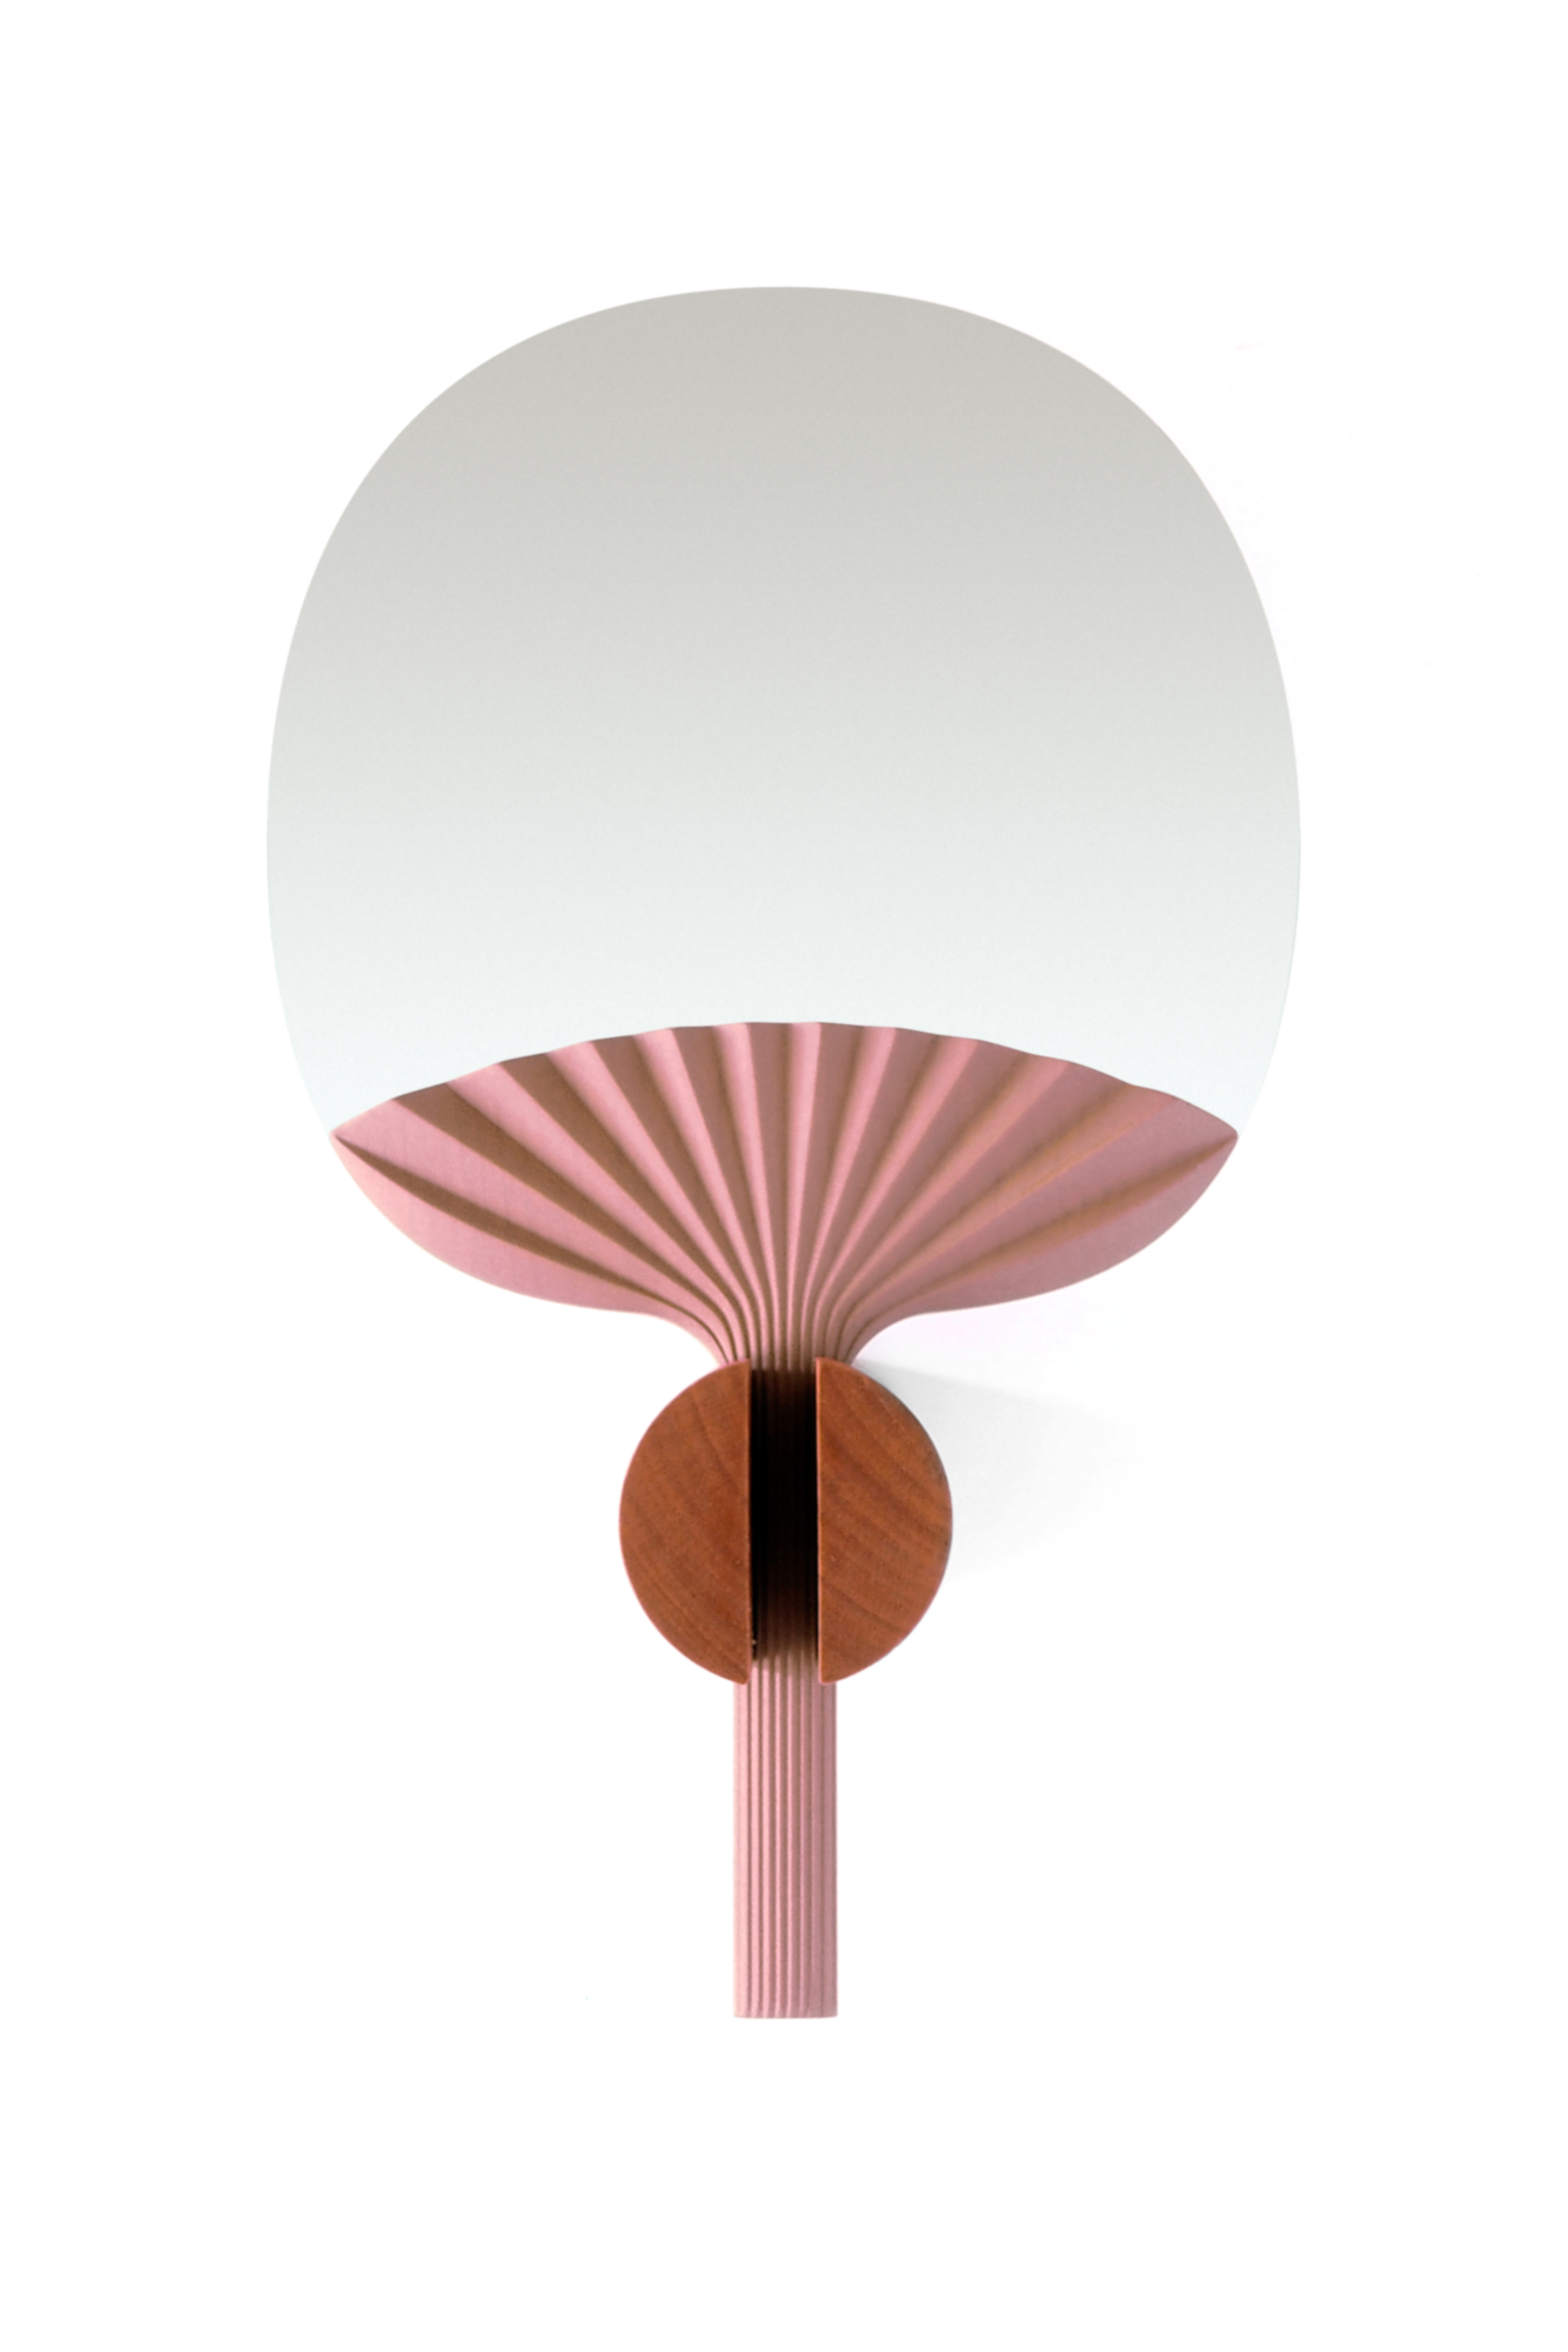 selfportrait mirror for portego by li-do laboratore innocenti design office